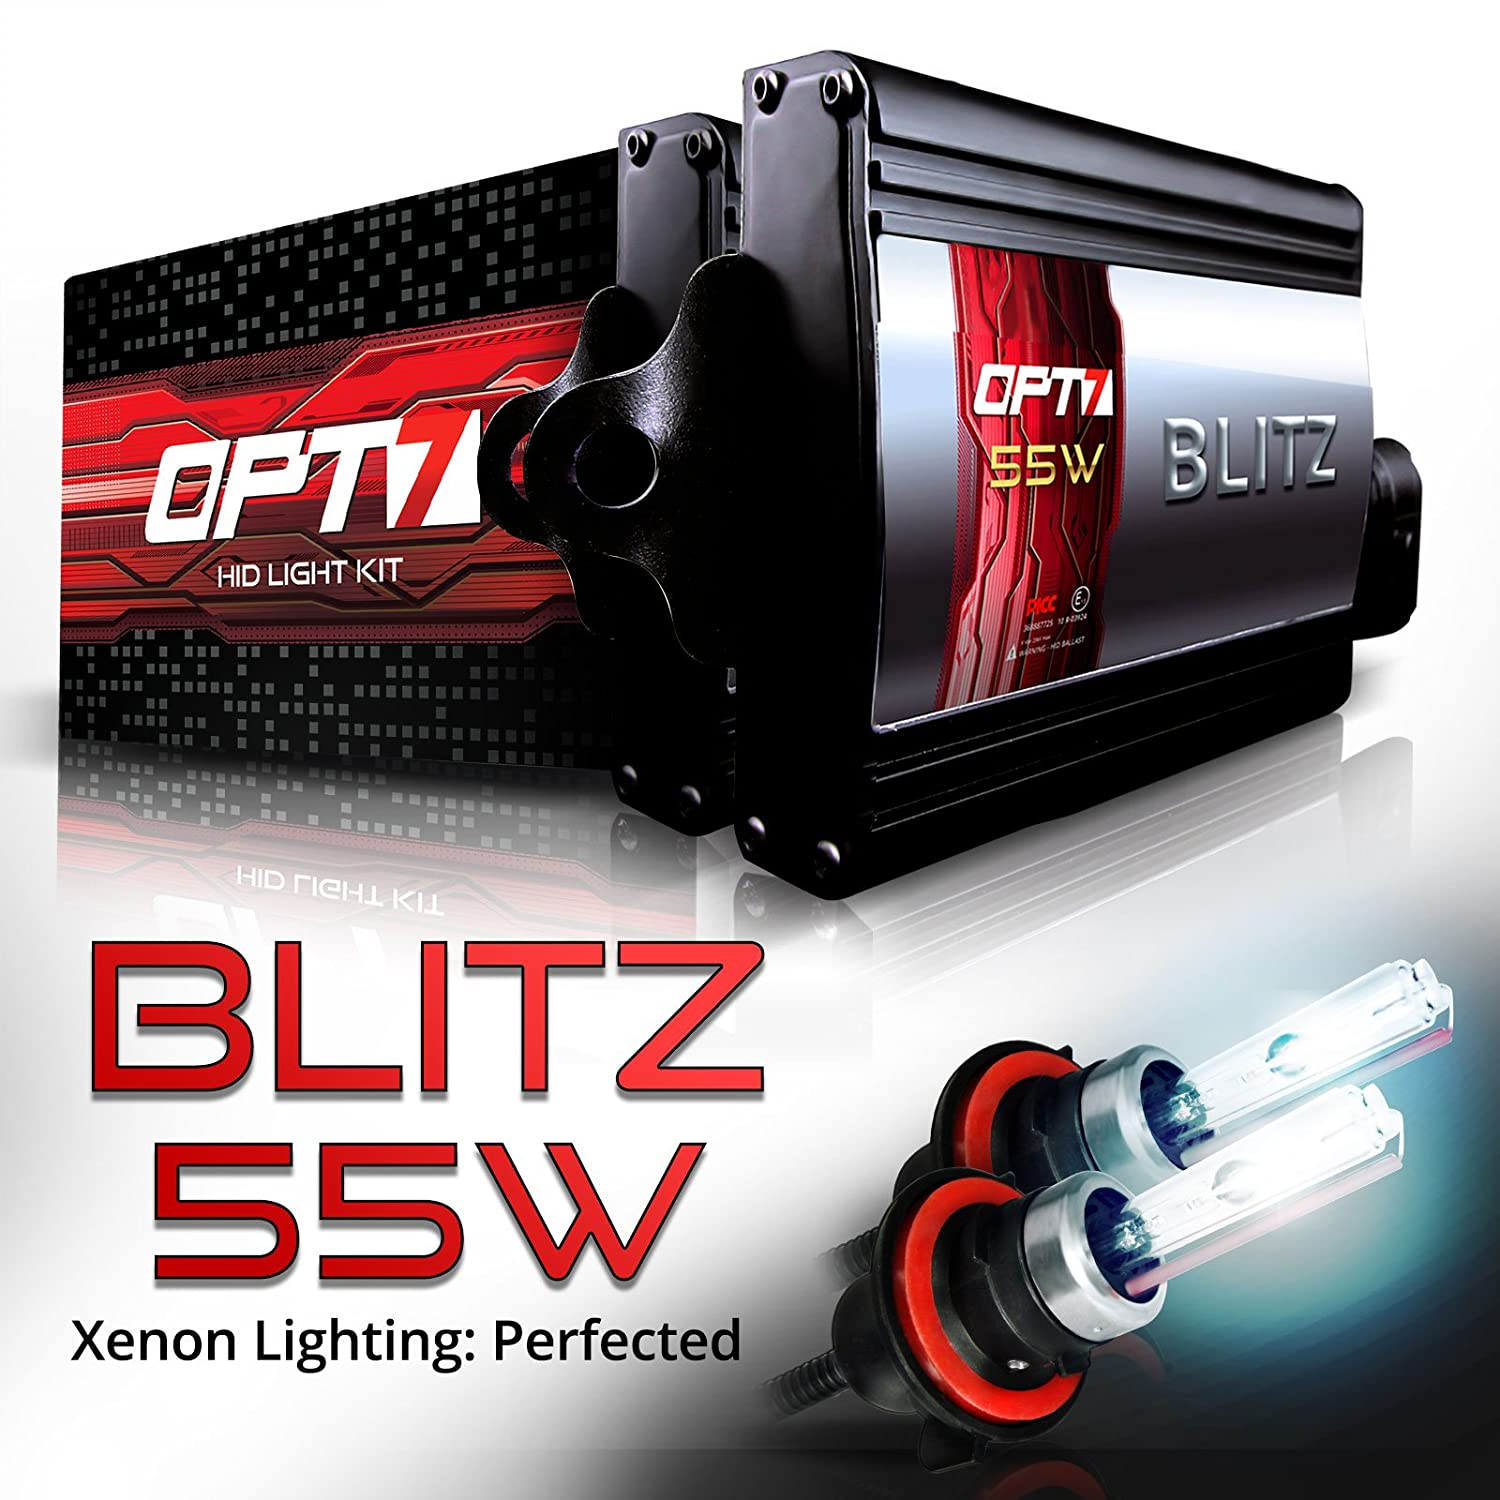 2 Yr Warranty 3X Brighter OPT7 BLTZ 55W H13 Bi-Xenon HID Kit 4X Longer Life 5000K Bright White Light All Bulb Sizes and Colors